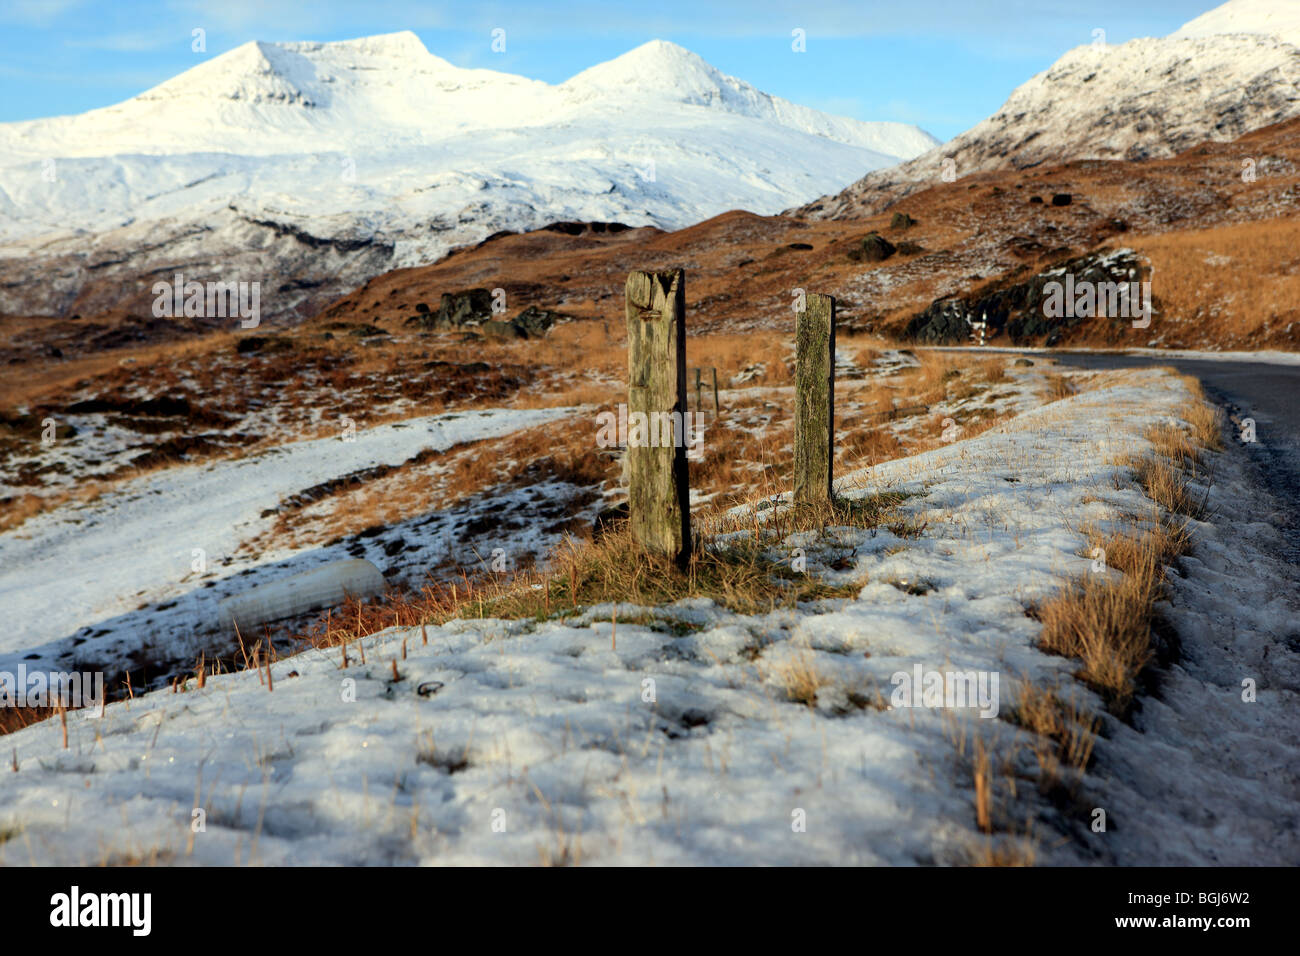 Ben More (left) on the Isle of Mull covered in snow with A'Chioch (right). - Stock Image